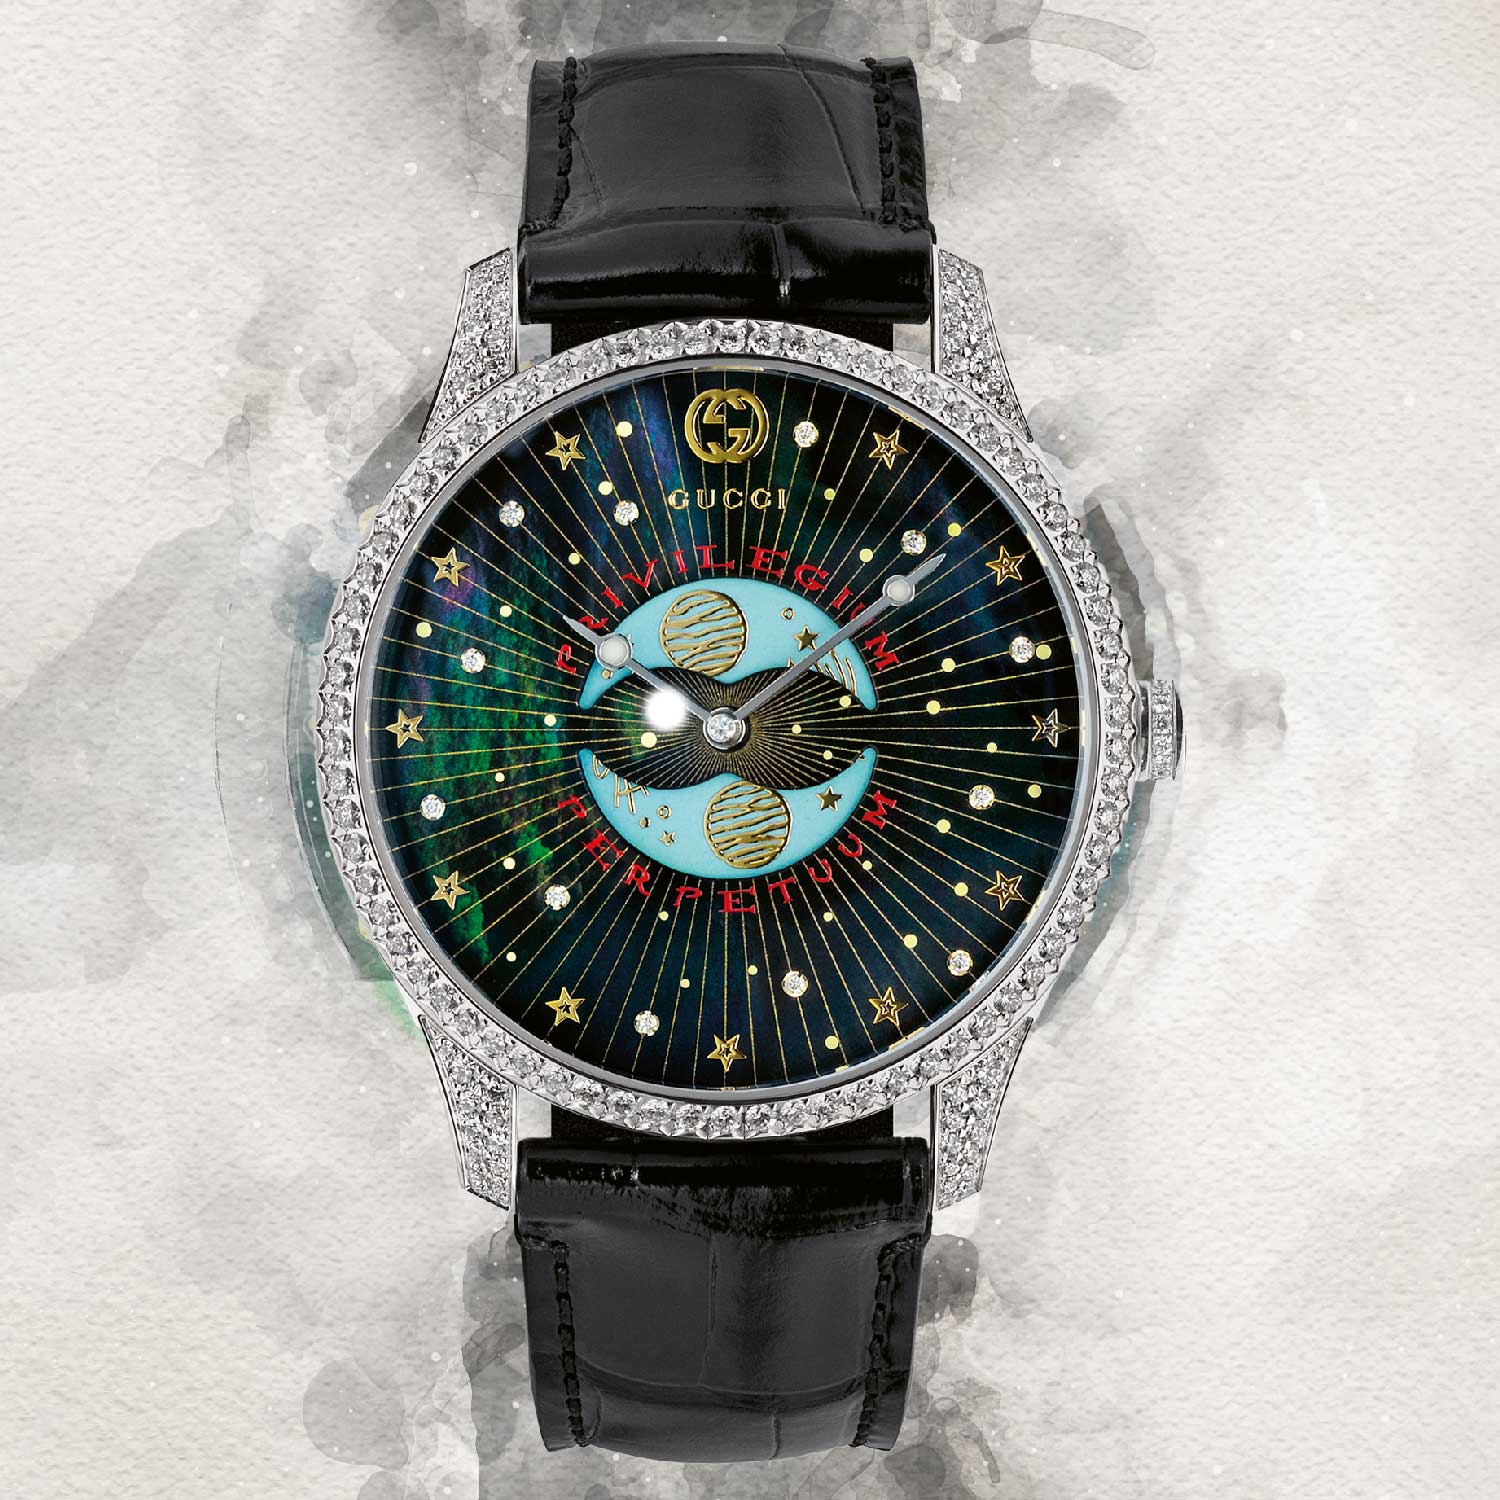 G-Timeless with moon phases featuring mother-of-pearl dial